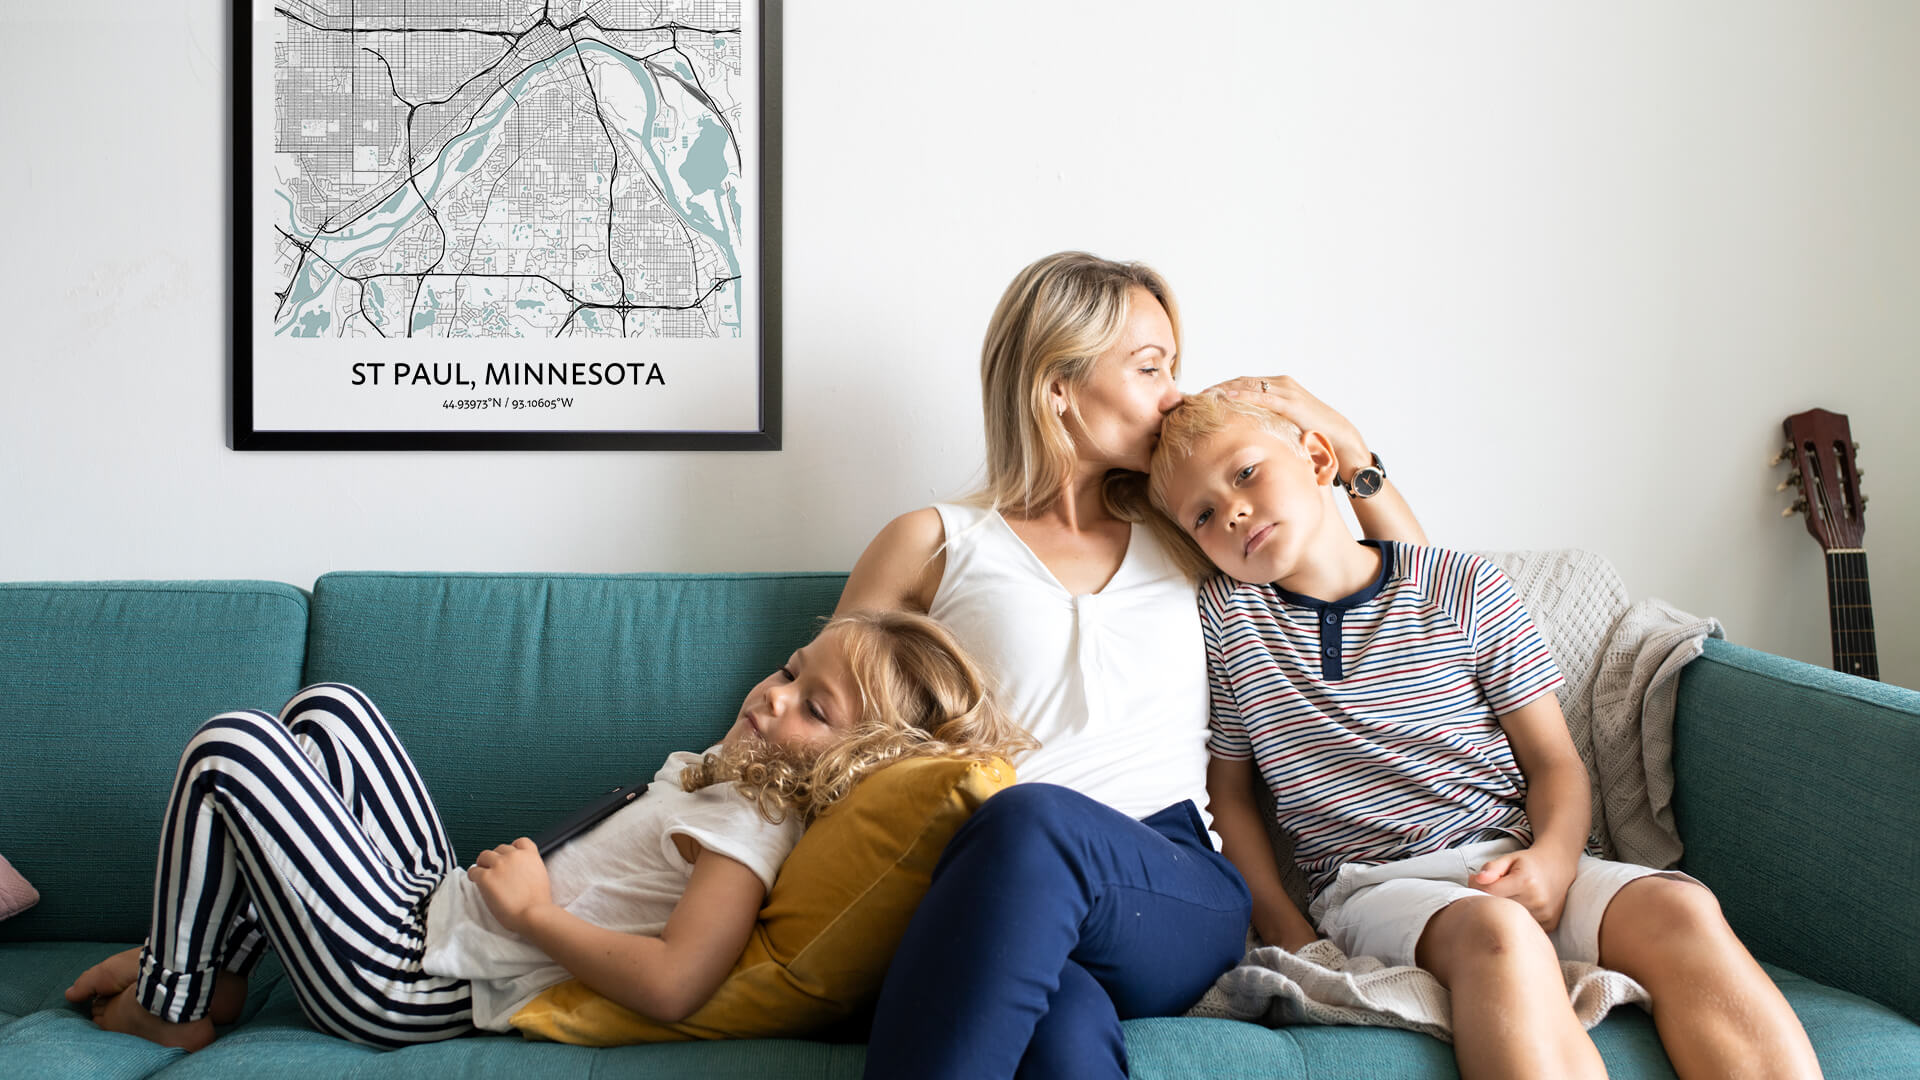 St Paul map poster